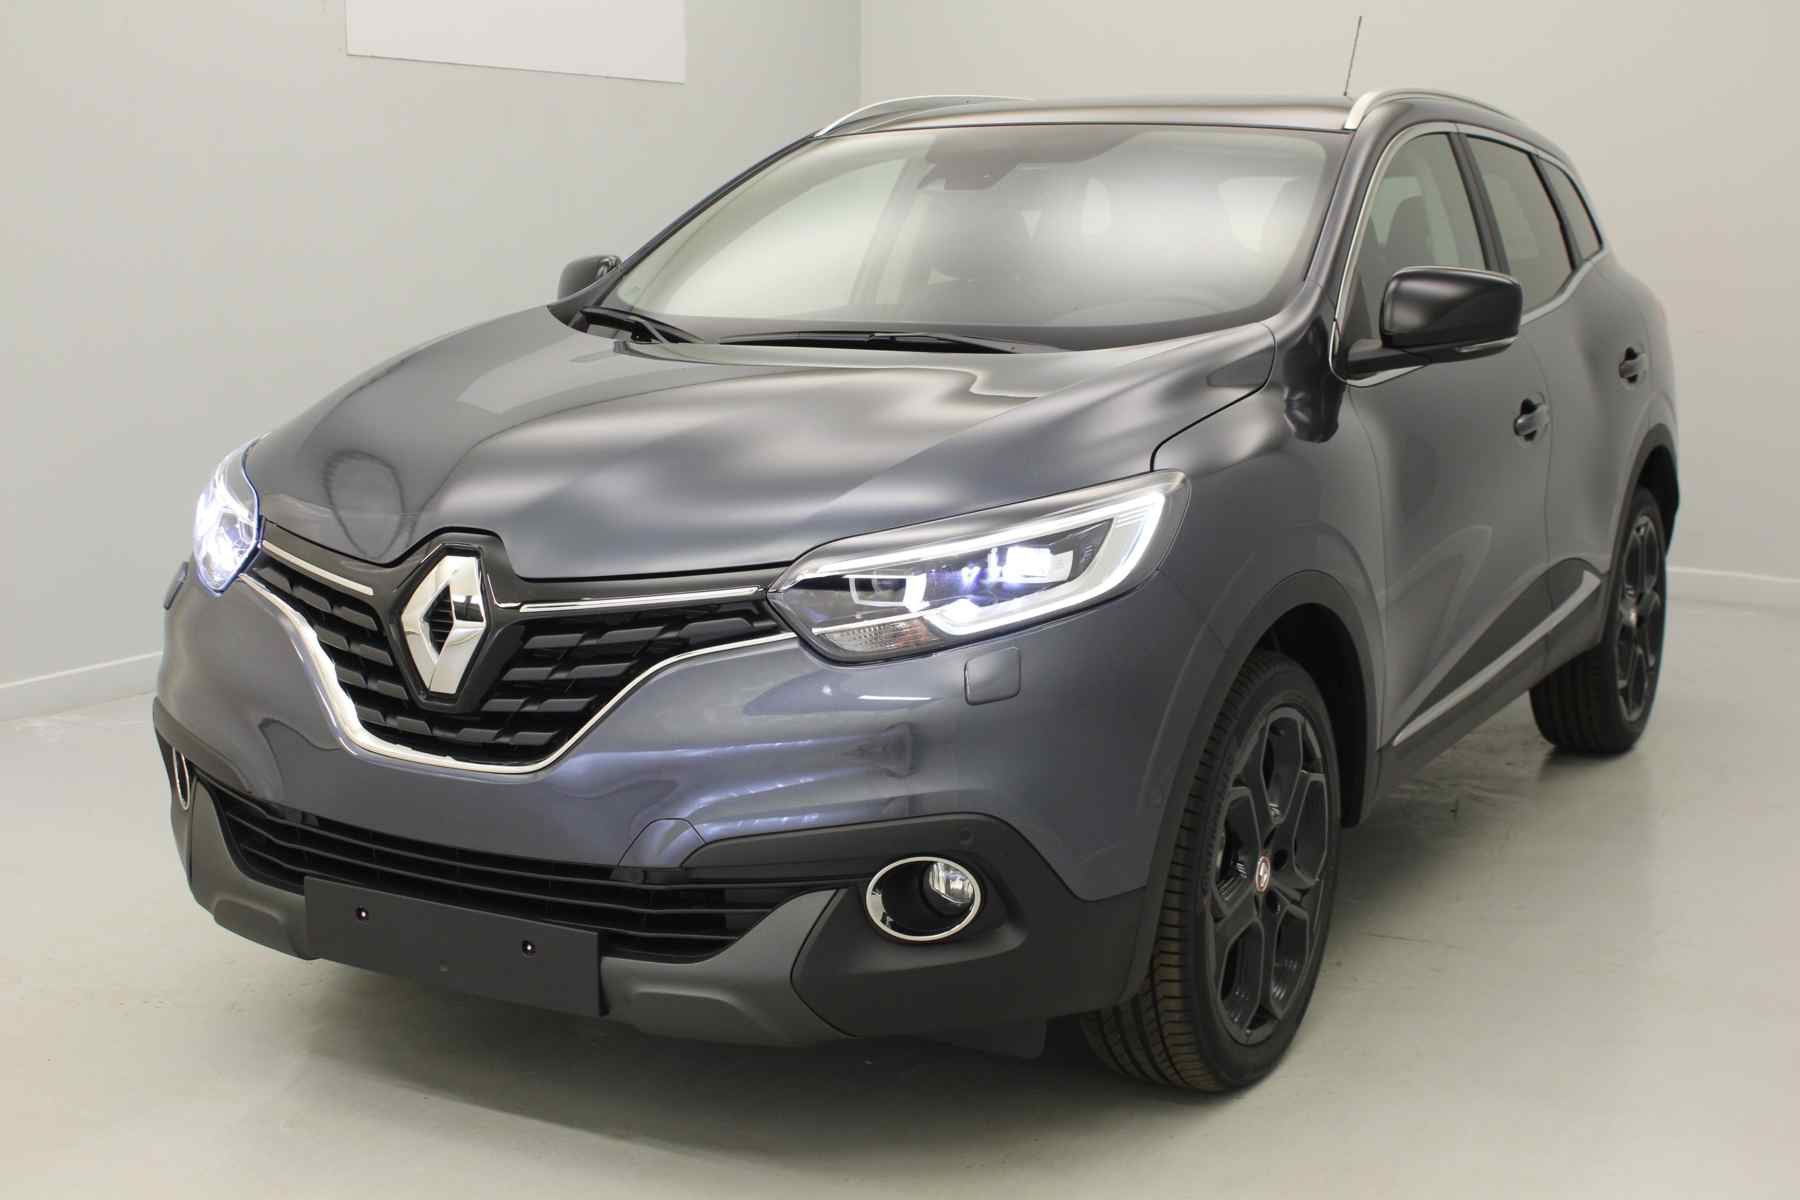 RENAULT Kadjar TCe 130 Energy Intens EDC Gris Titanium + Pack Cuir + Toit panoramique avec options